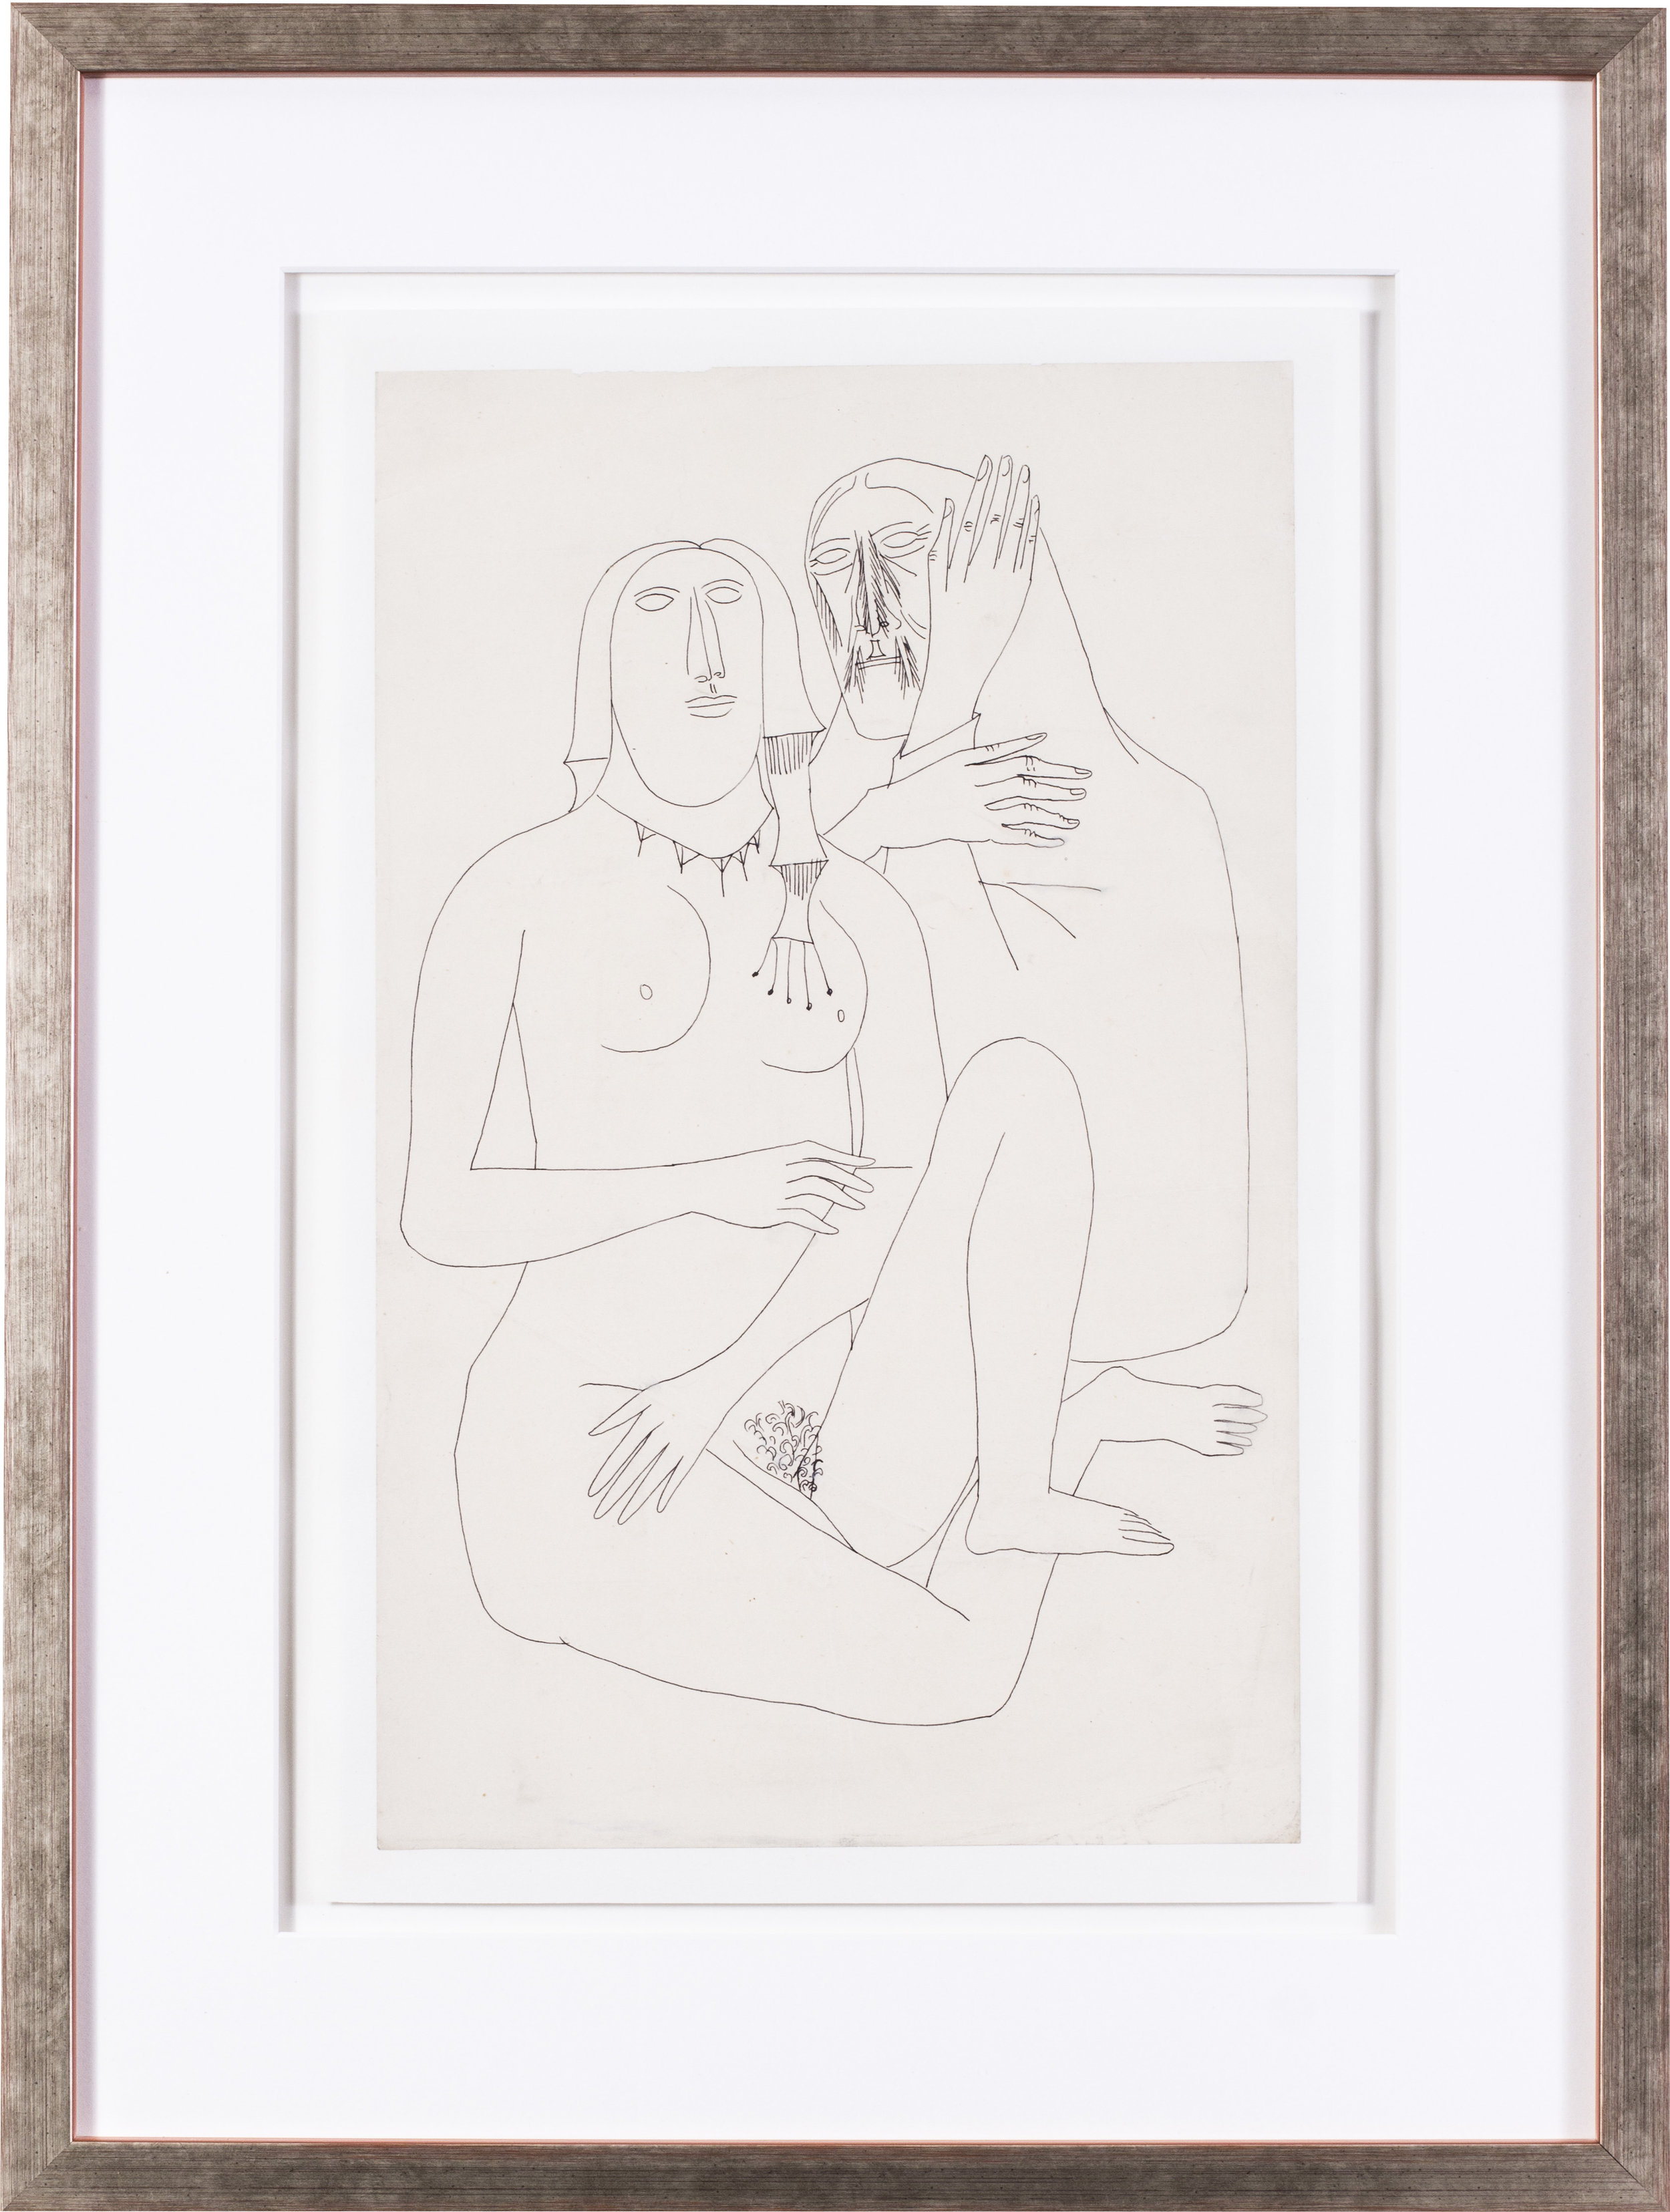 Lovers   Pen on paper  15.3/4 x 9.7/8 in. (40 x 25 cm.)  Provenance: The artist's wife Maria, Nee Figueiredo, gifted to her nephew   £3,100